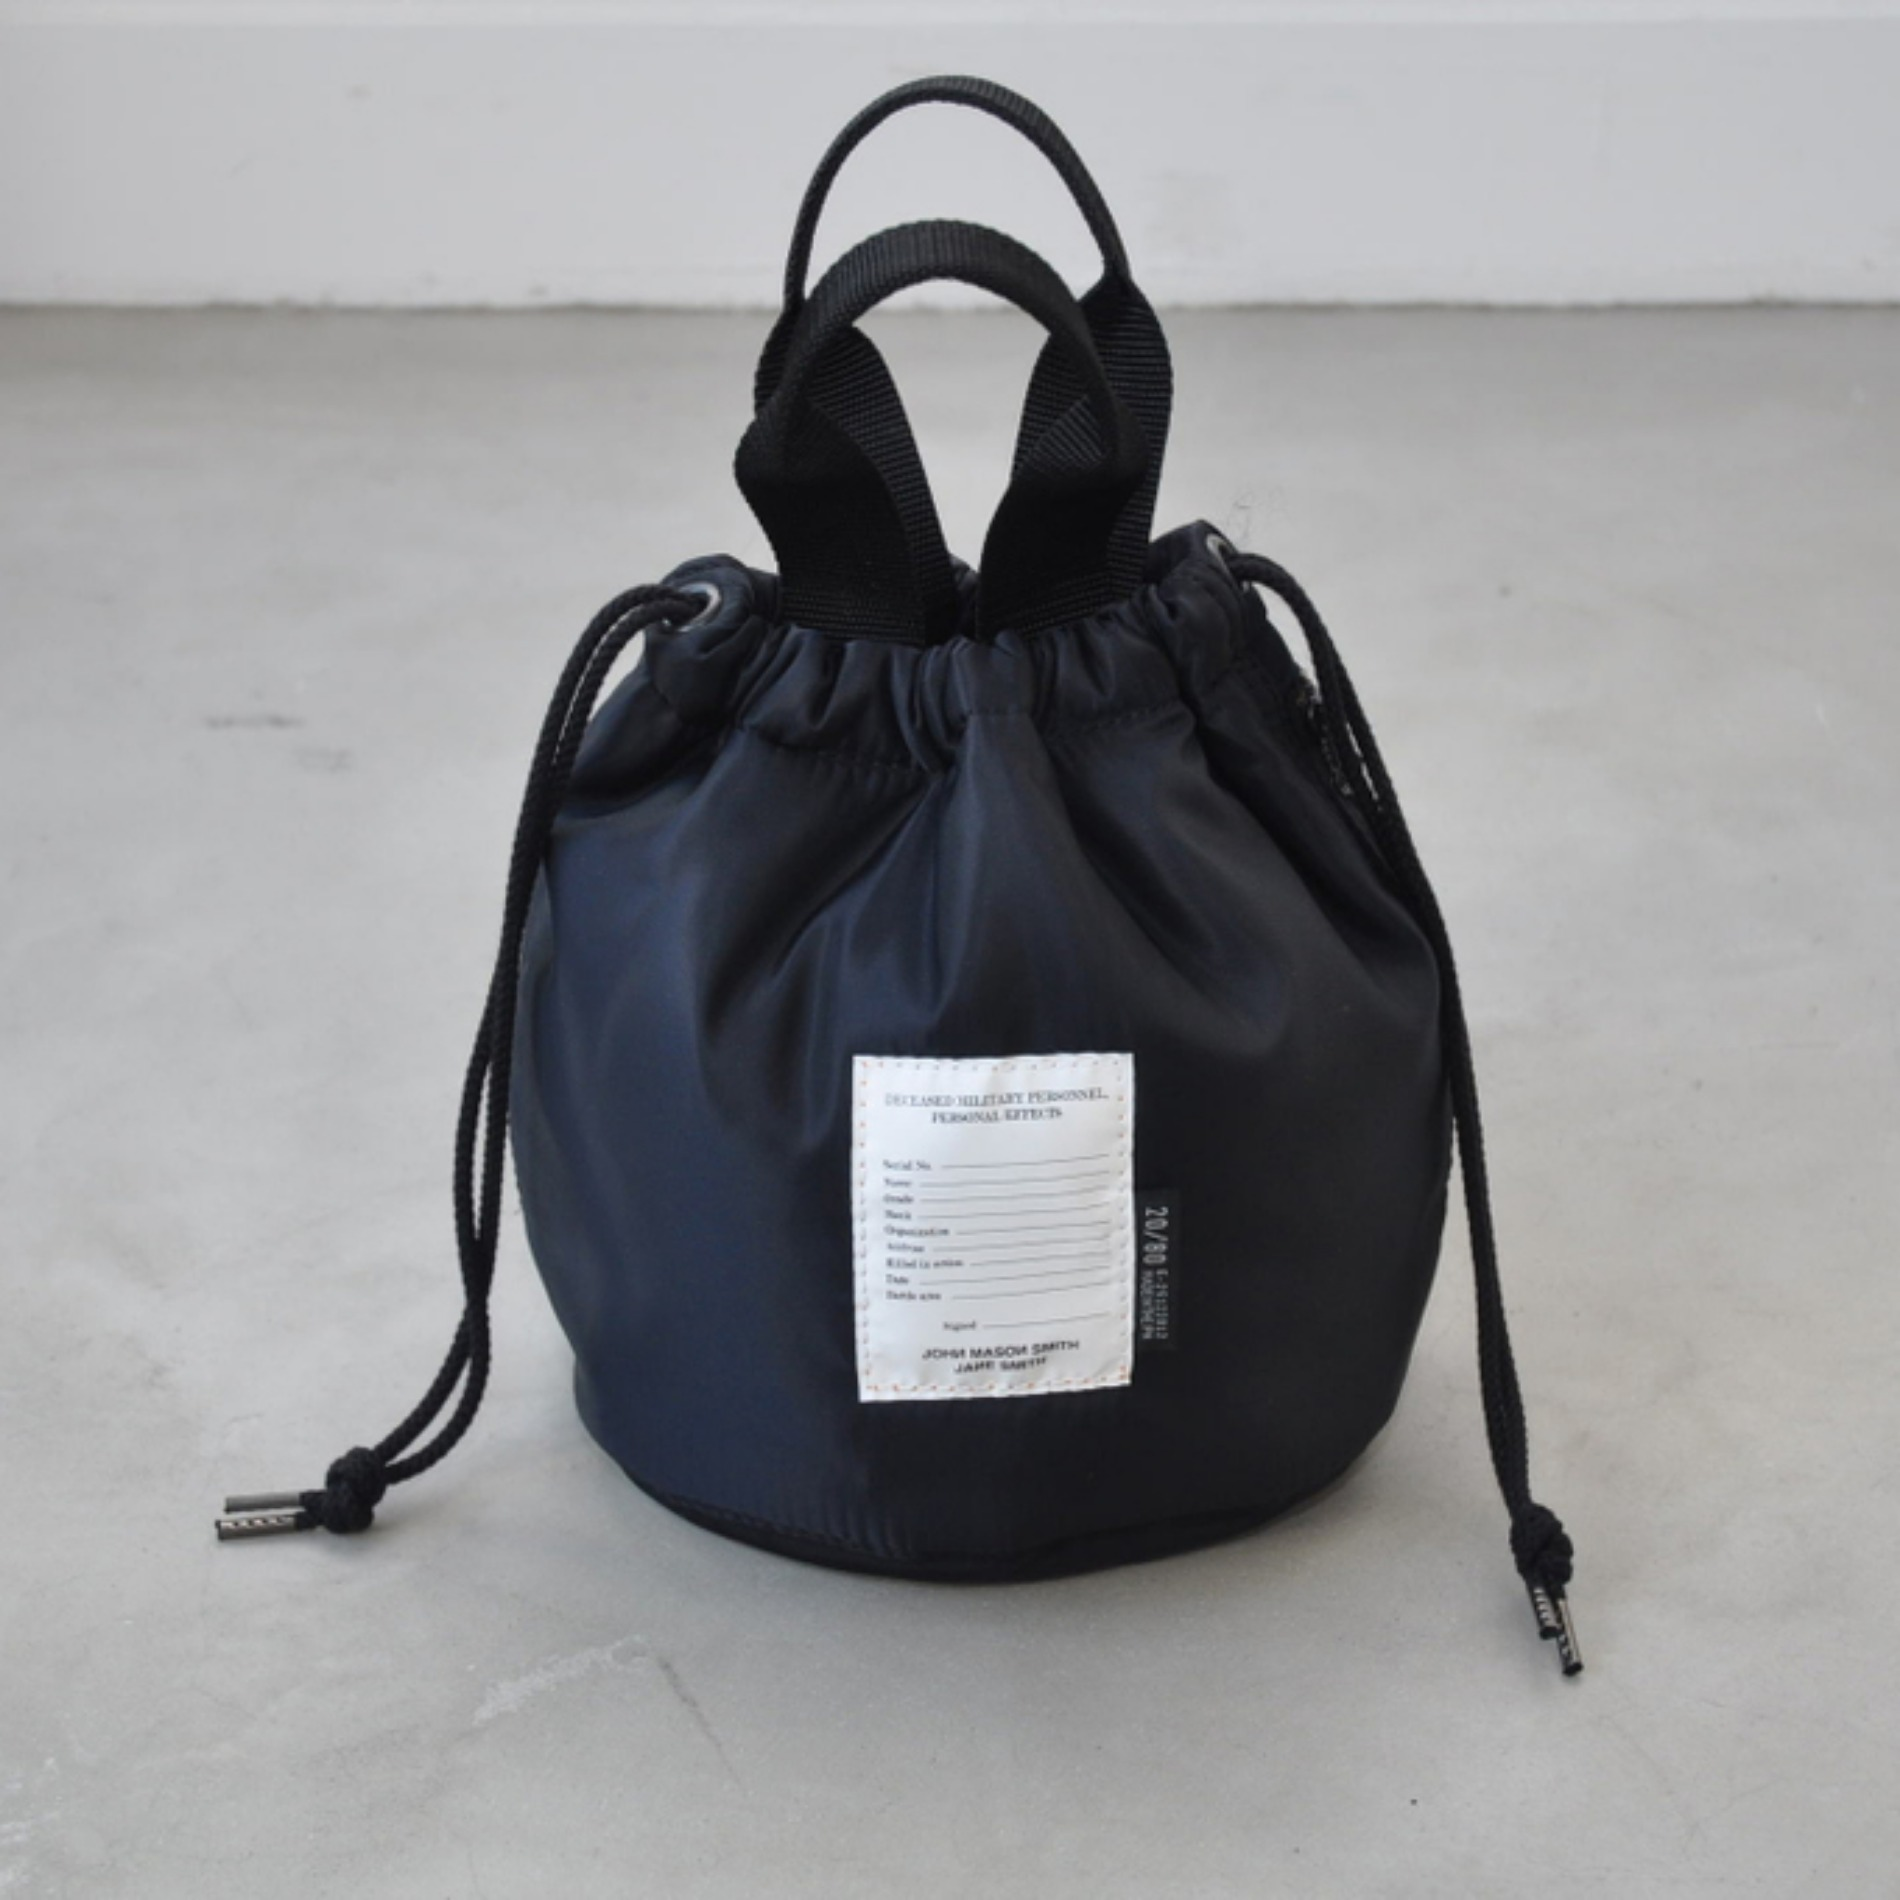 AW20 JOHN MASON SMITH KINCHAKU BAG BLACK